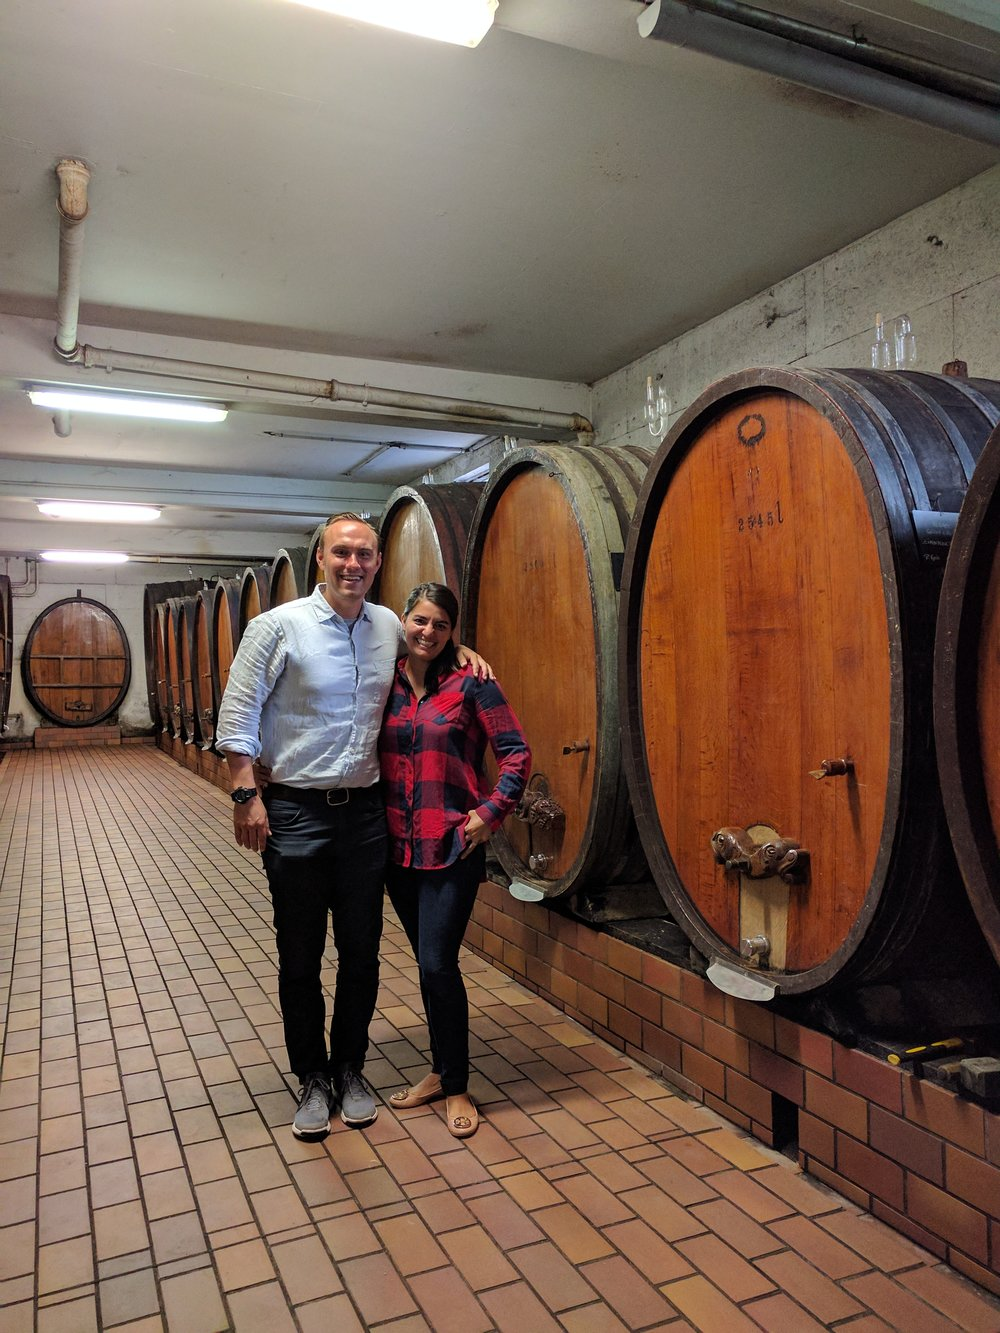 Domaine Riefle's cellar room